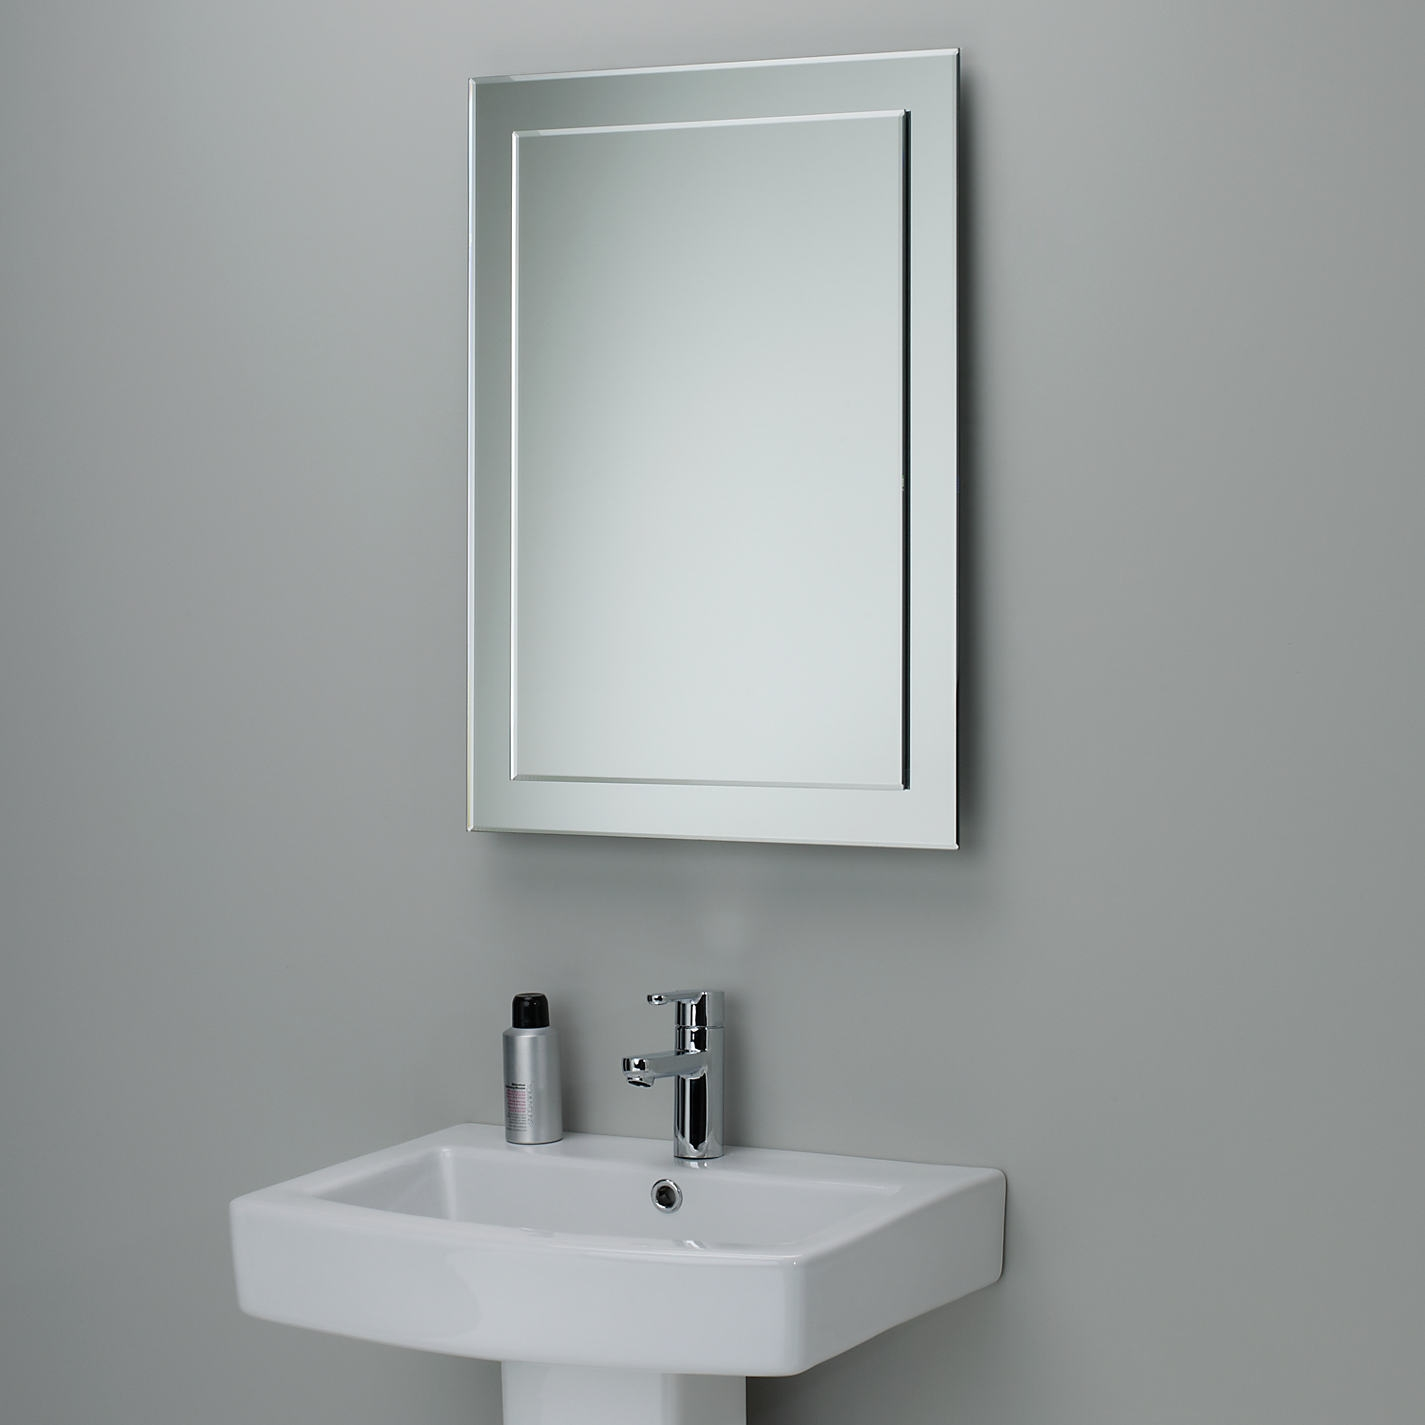 Buy Bathroom Mirror Home Design Ideas In Buy A Mirror (Image 3 of 15)